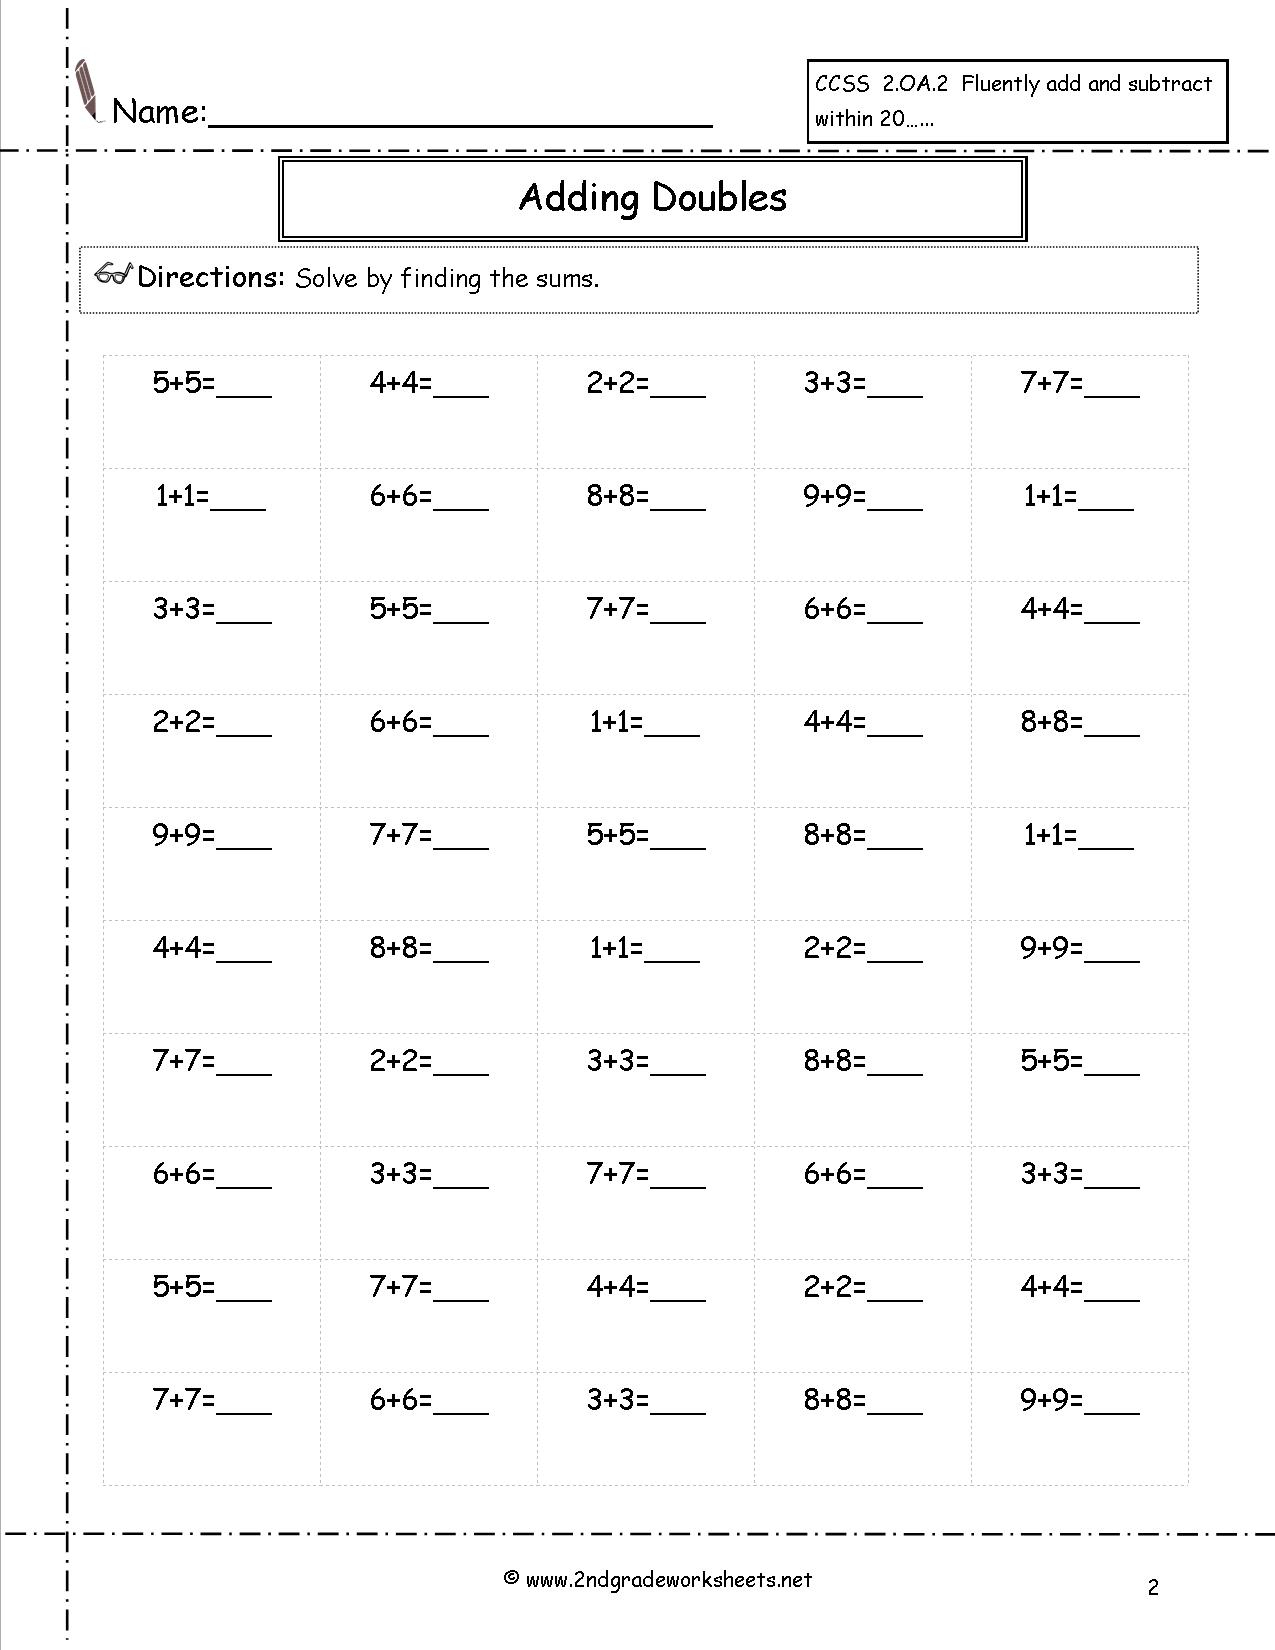 Free Math Worksheets And Printouts - Free Printable Time Worksheets For Grade 3